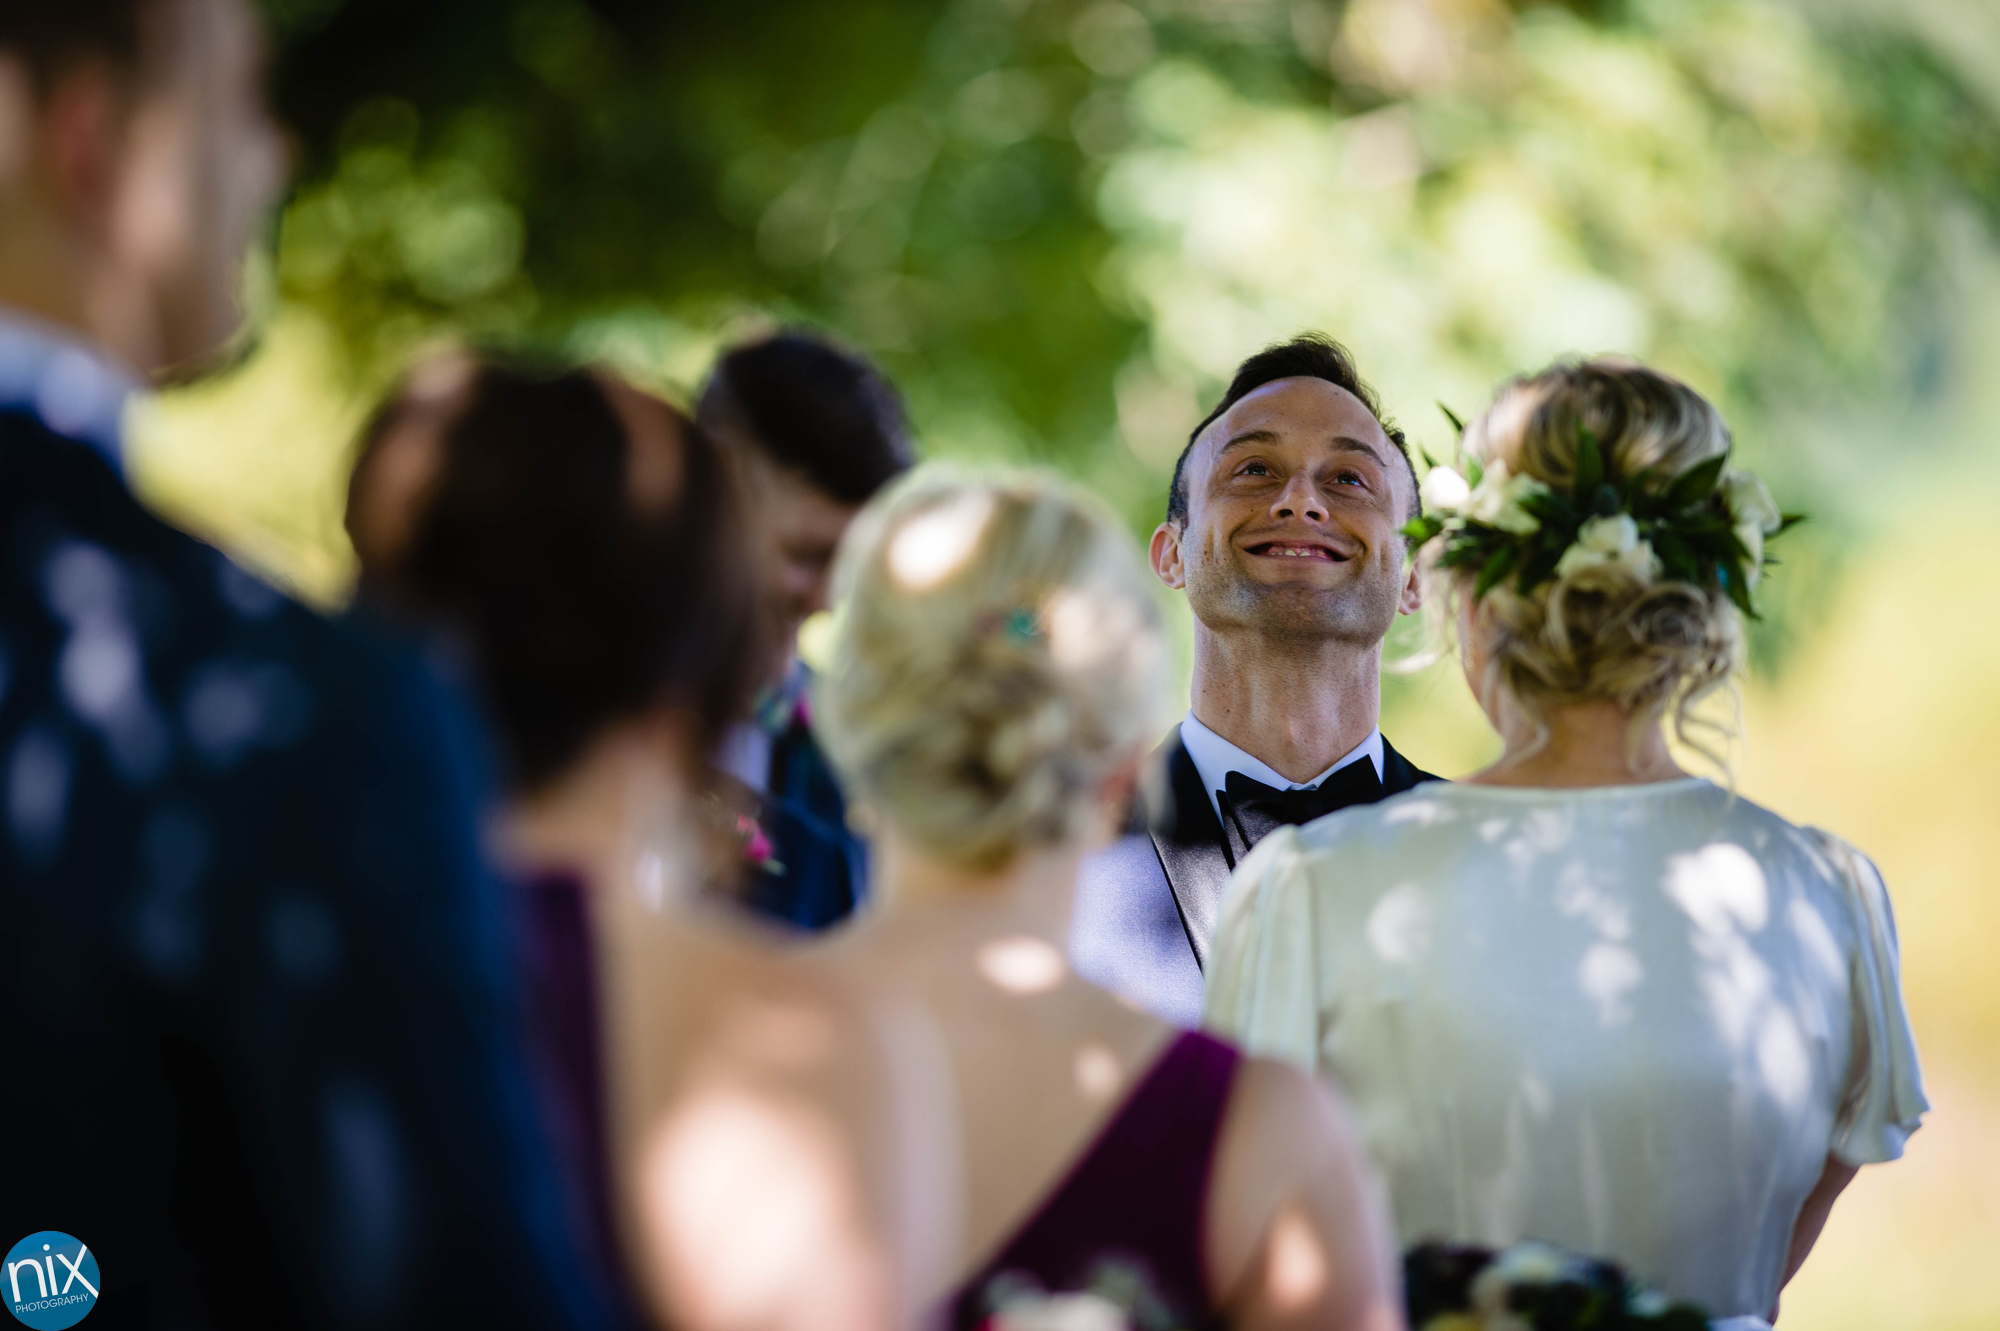 groom takes it all in during wedding ceremony .JPG